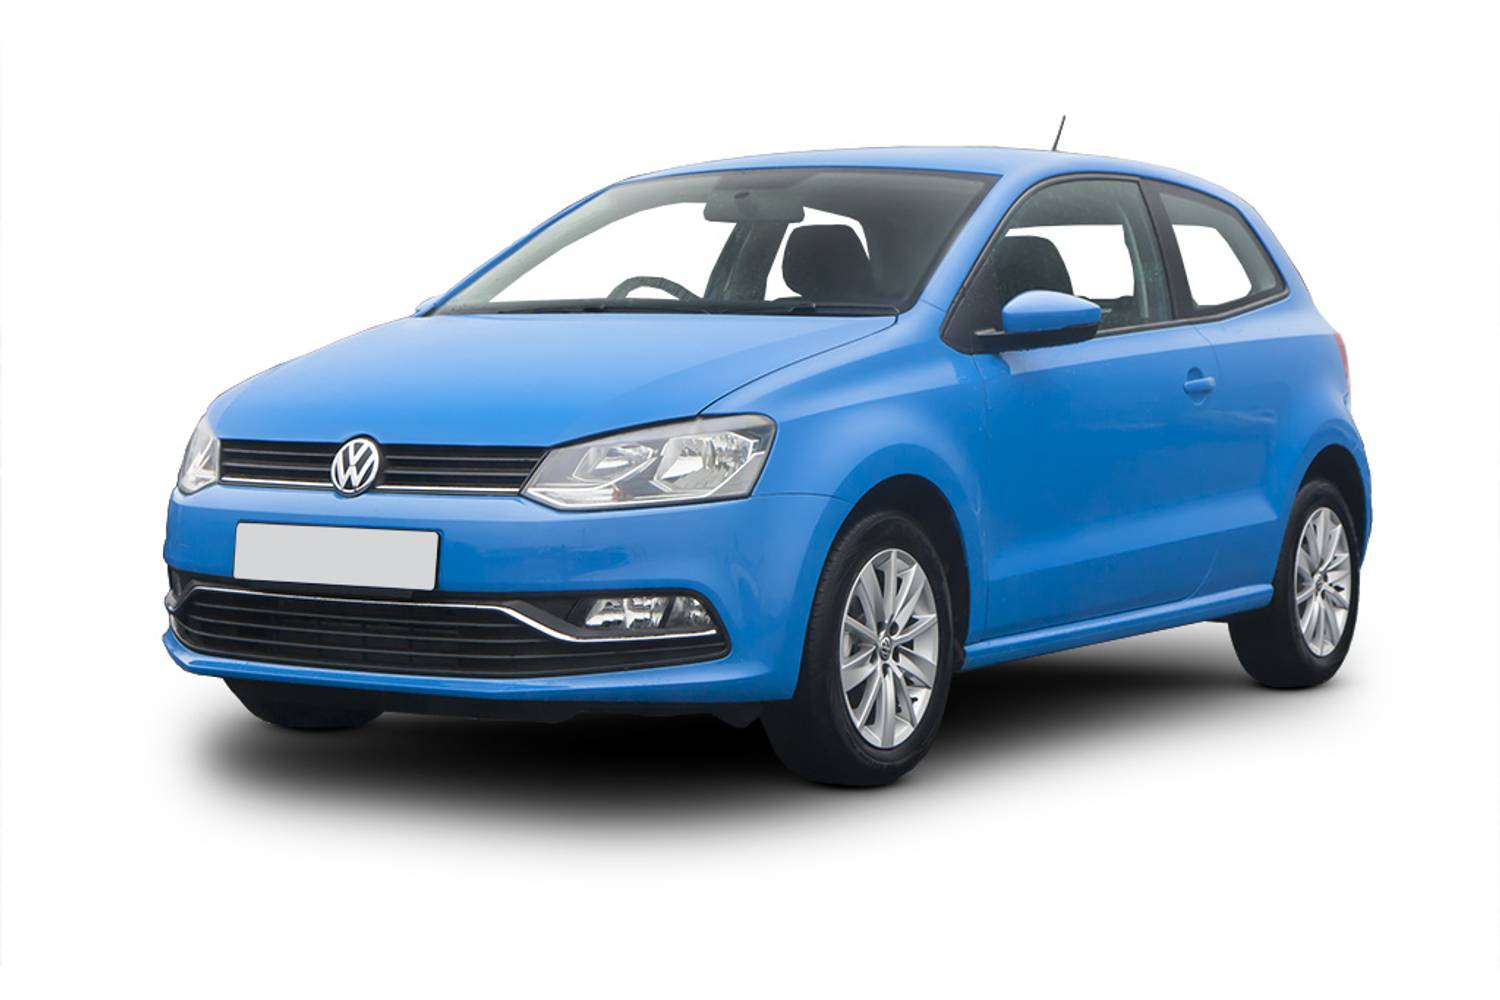 new volkswagen polo hatchback 1 2 tsi beats 3 door dsg 2016 for sale. Black Bedroom Furniture Sets. Home Design Ideas